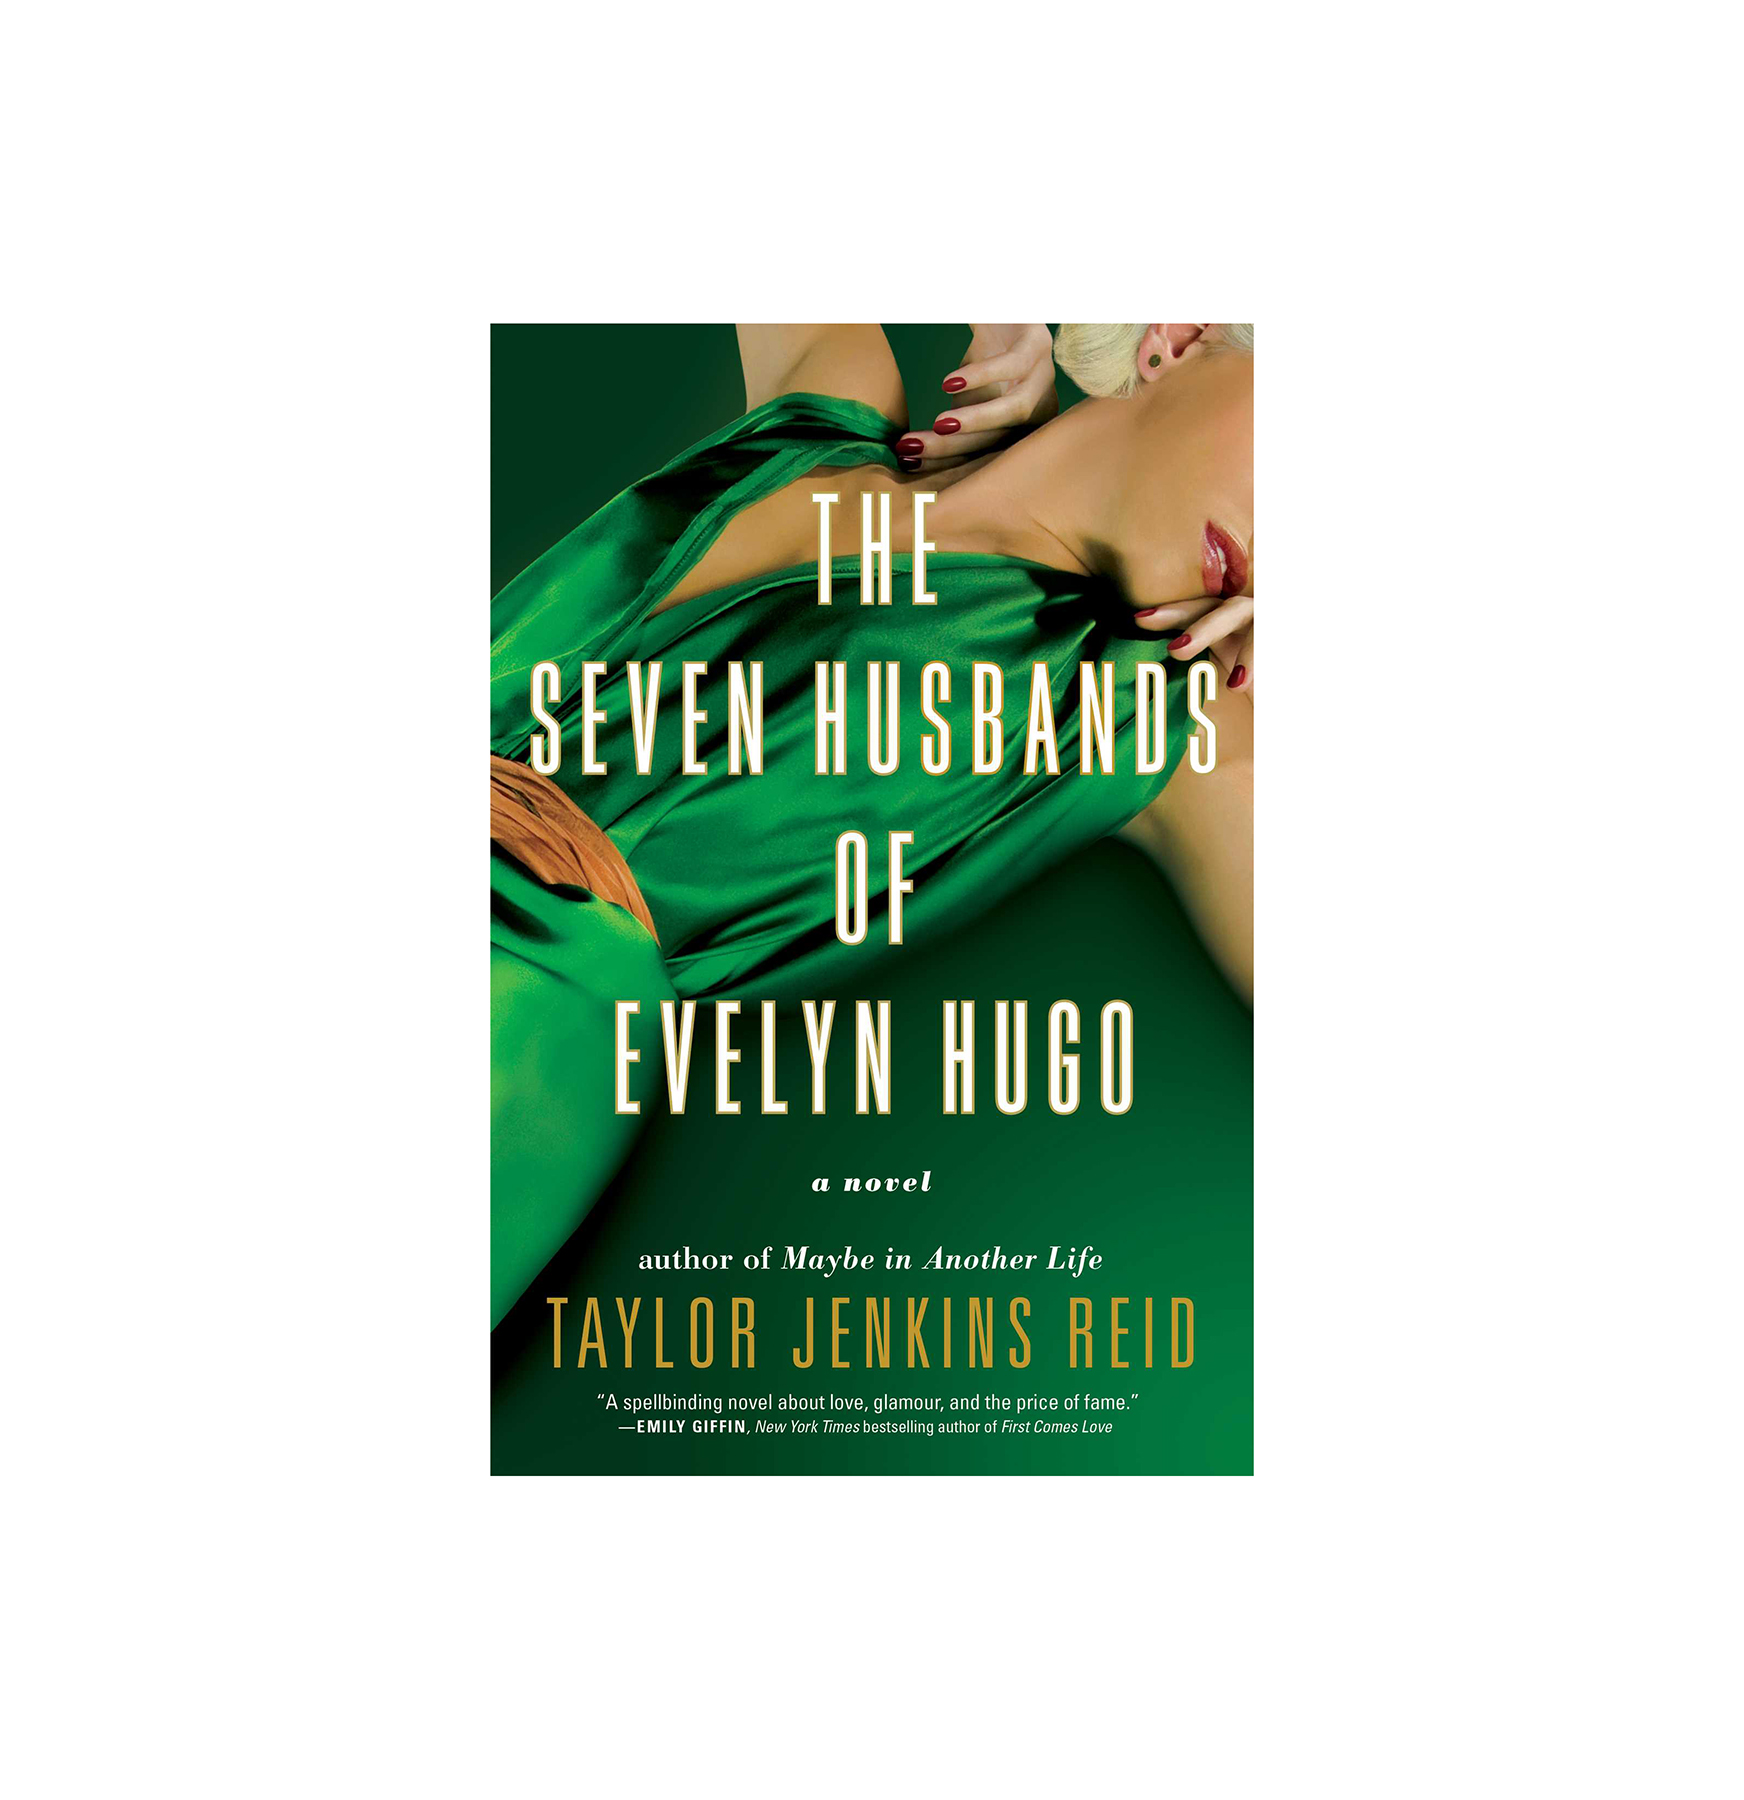 The Seven Husbands of Evelyn Hugo: A Novel, by Taylor Jenkins Reid